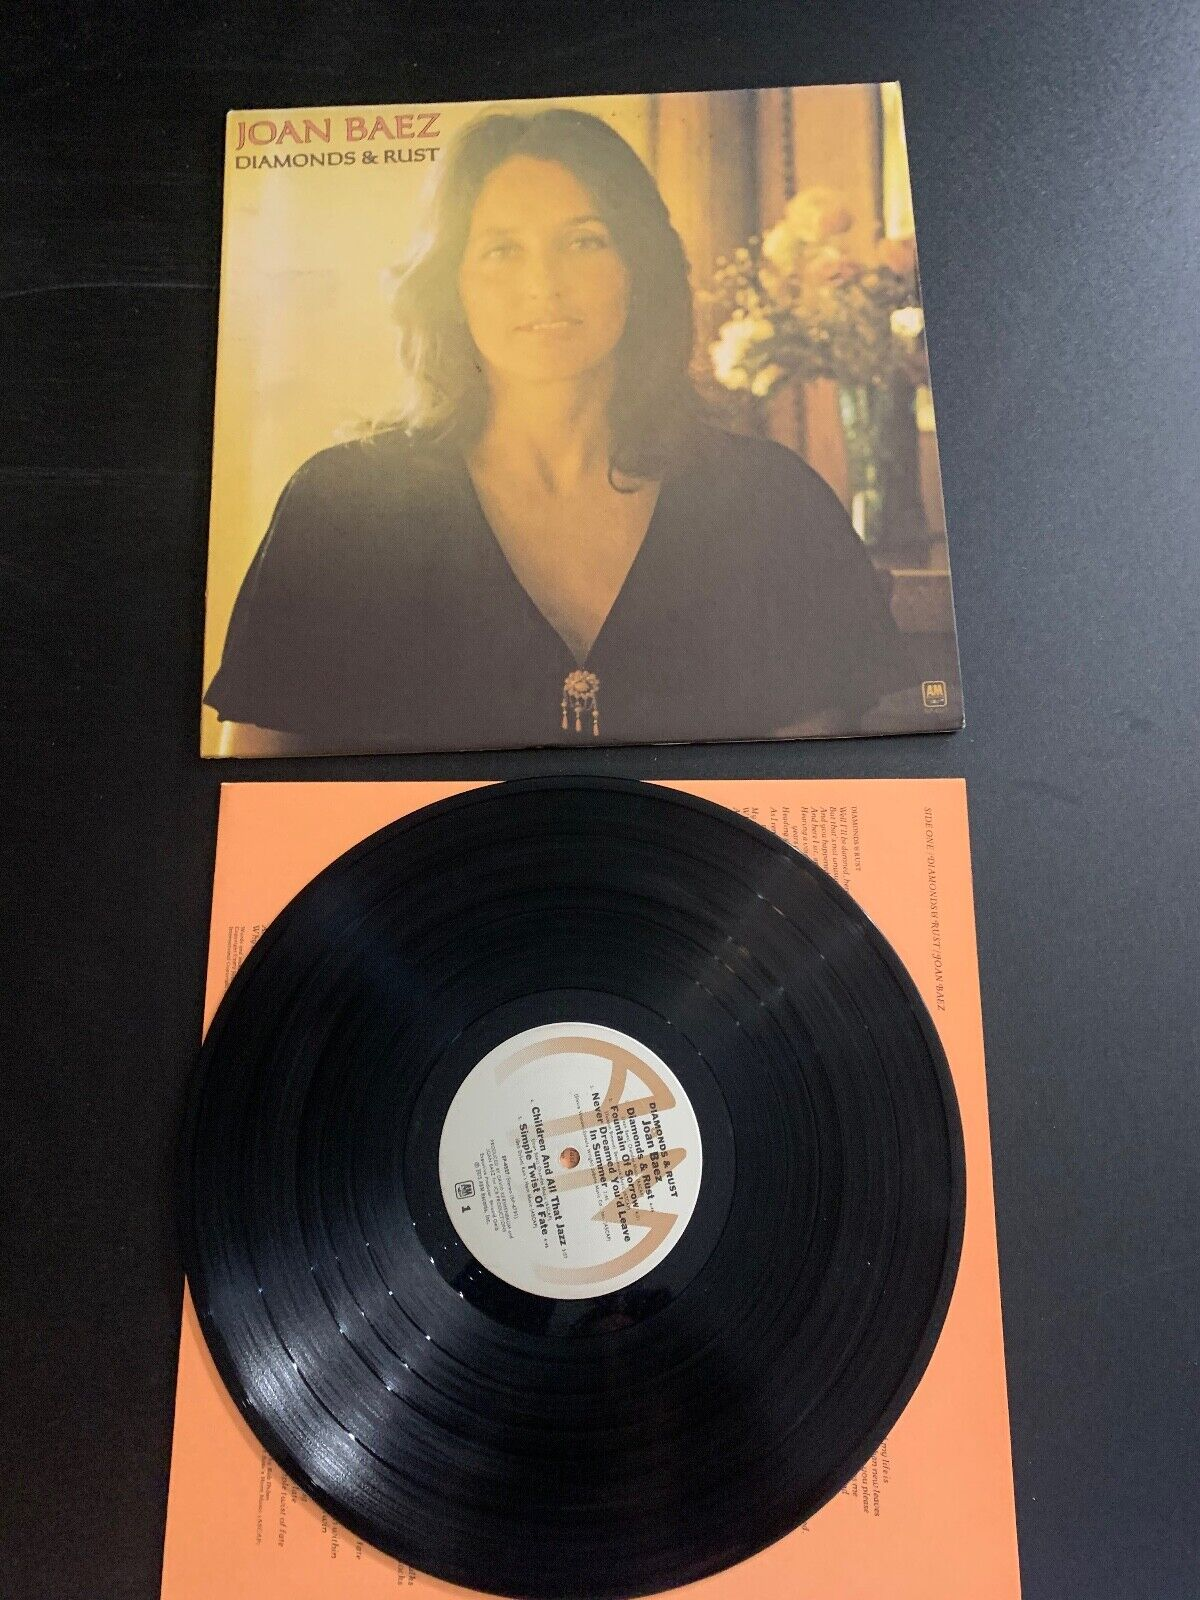 LP RECORD - JOAN BAEZ - DIAMONDS AND RUST - A M RECORDS  - $9.99